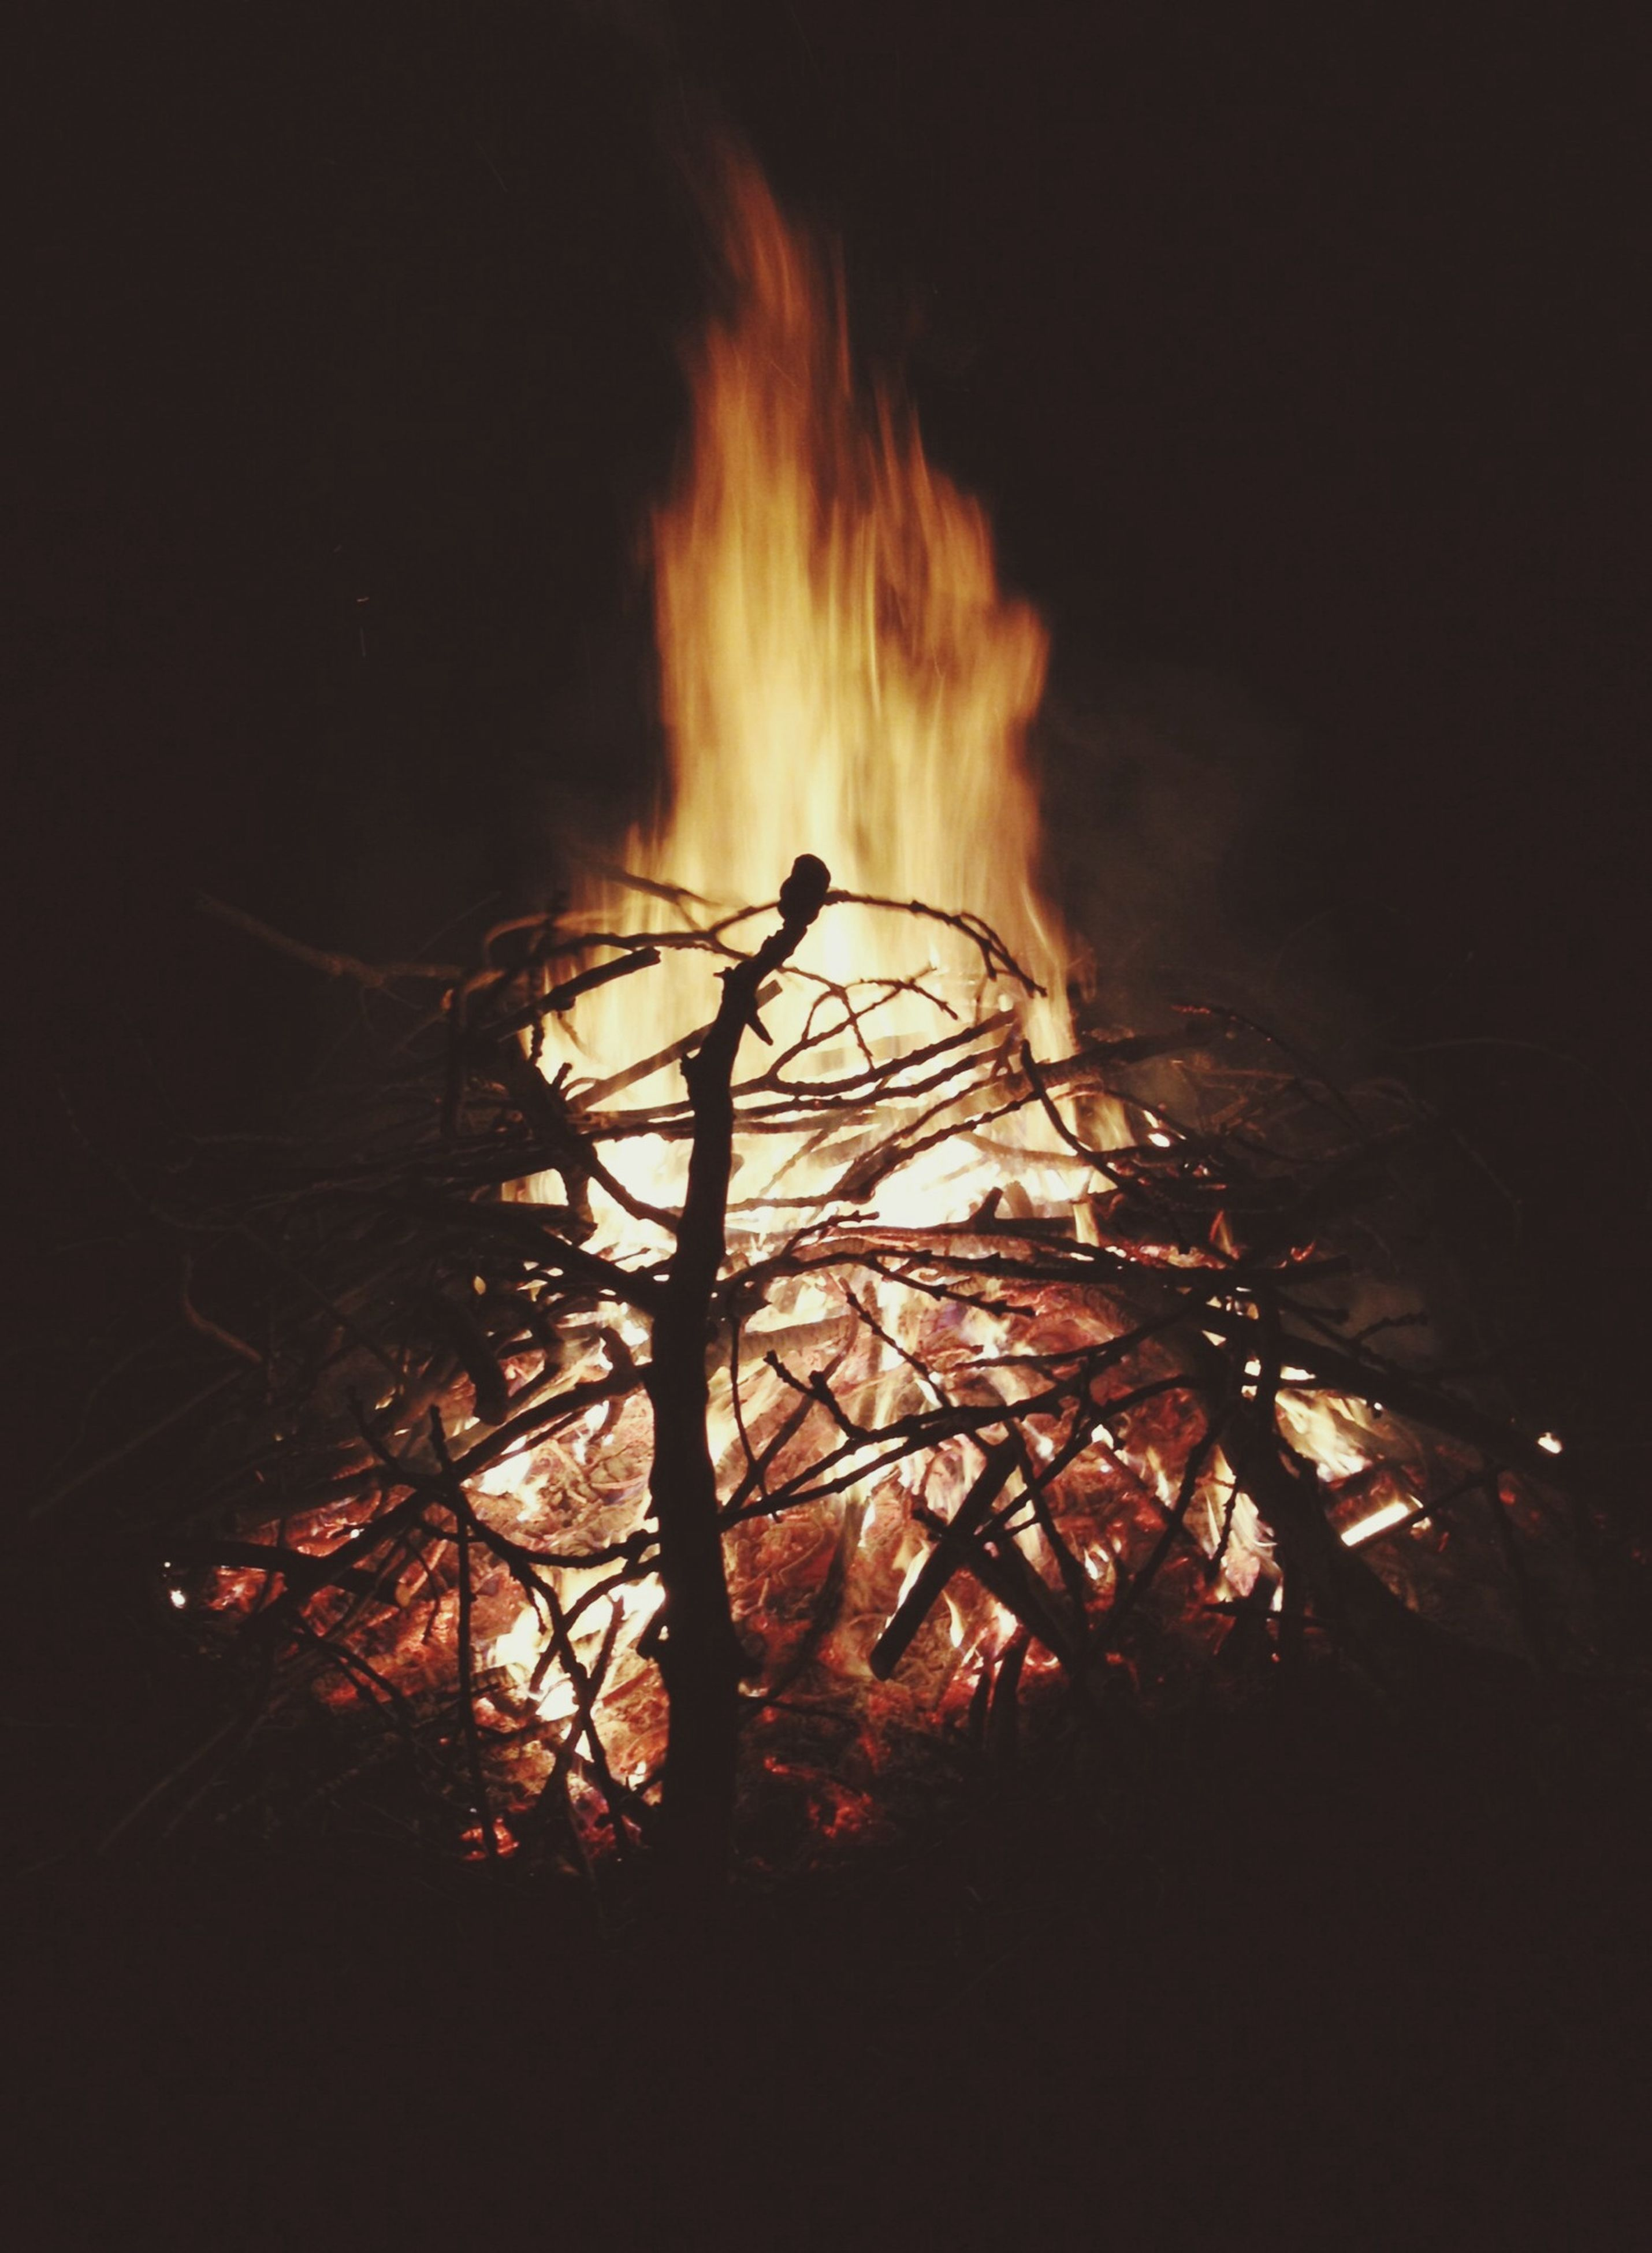 night, fire - natural phenomenon, silhouette, glowing, burning, dark, flame, low angle view, illuminated, heat - temperature, orange color, copy space, sky, outdoors, tree, long exposure, motion, nature, light - natural phenomenon, no people